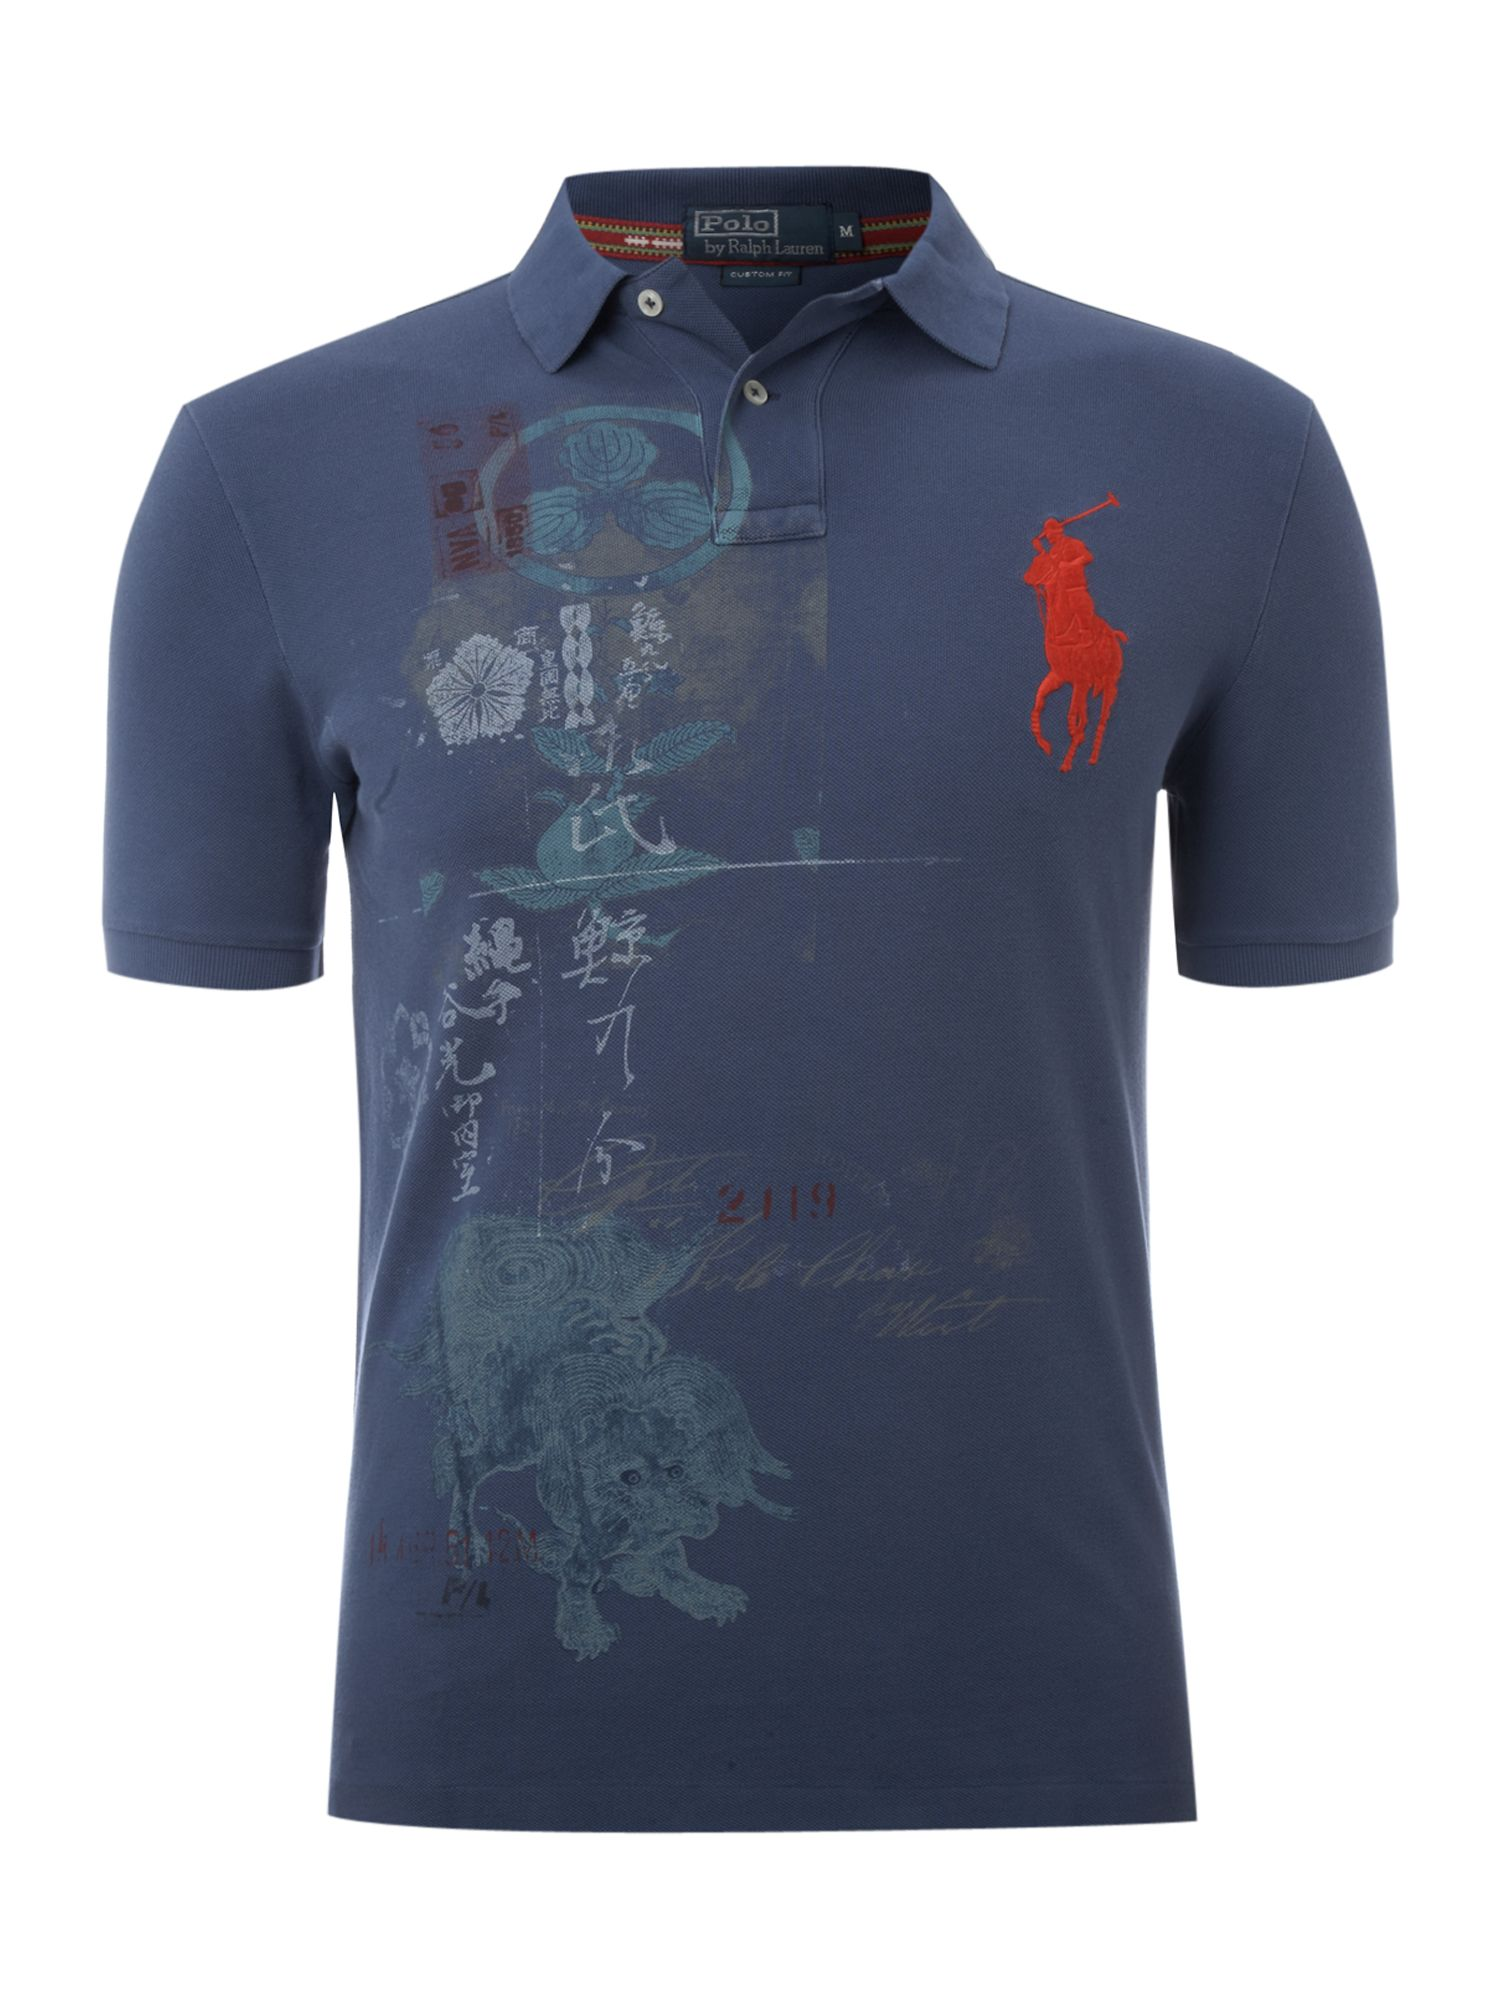 Polo ralph lauren custom fitted printed polo shirt in blue for Custom printed dress shirts